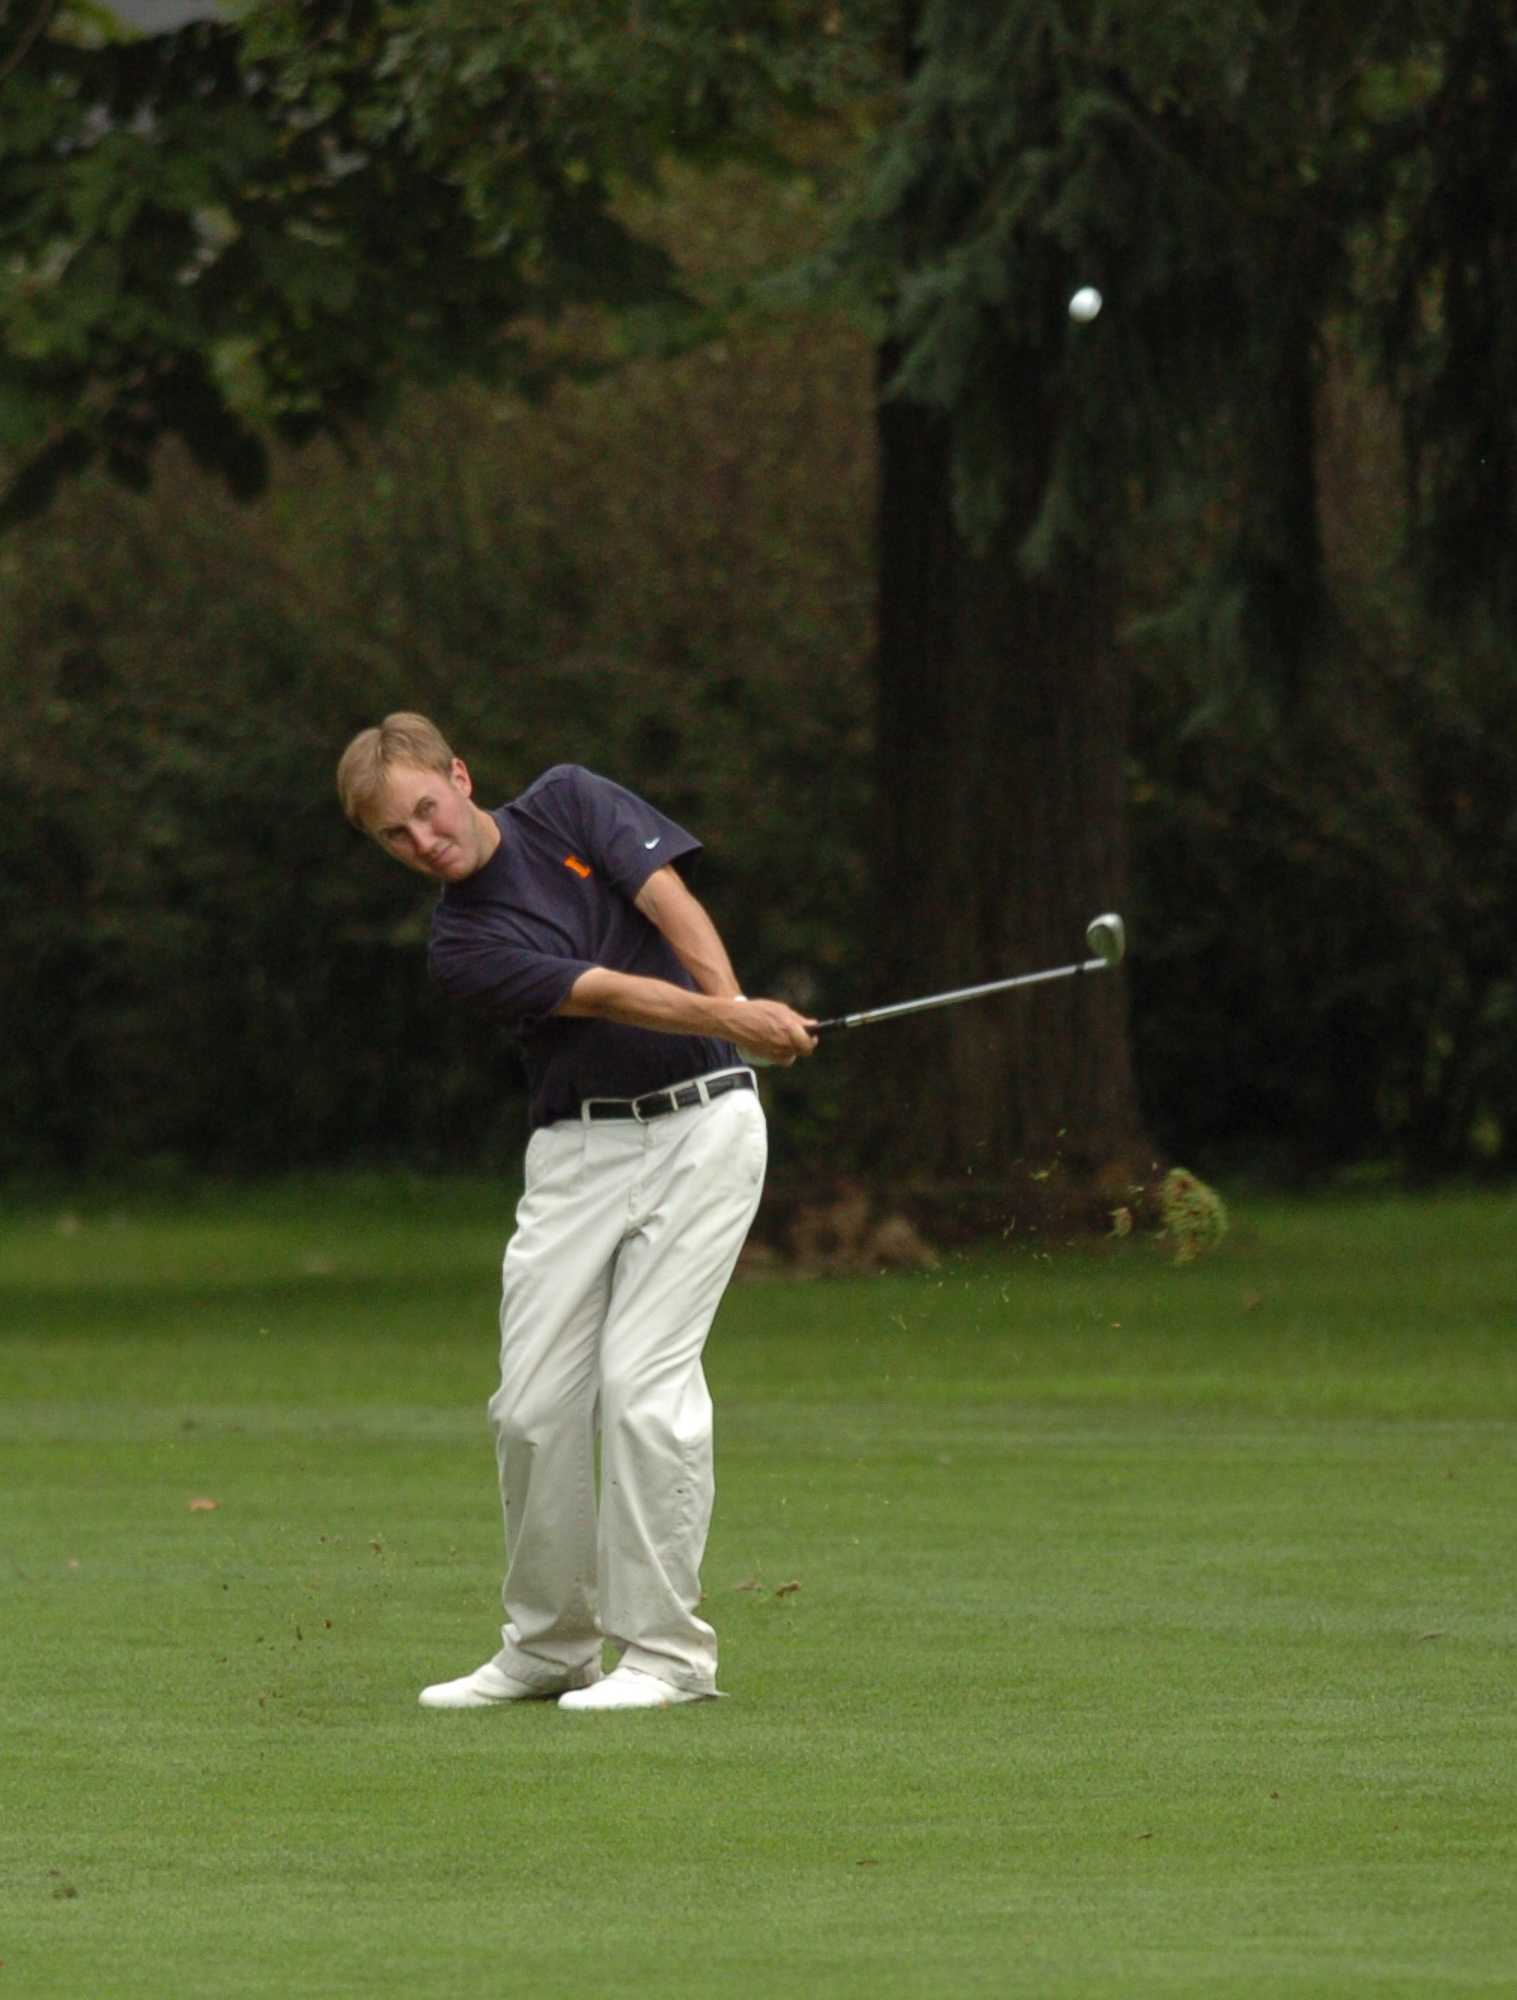 Illinois golfer Patrick Nack practices at Urbana Golf and Country Club Thursday, September 14, 2006.  Men's golf will play at Olympia Fields September 24-25.